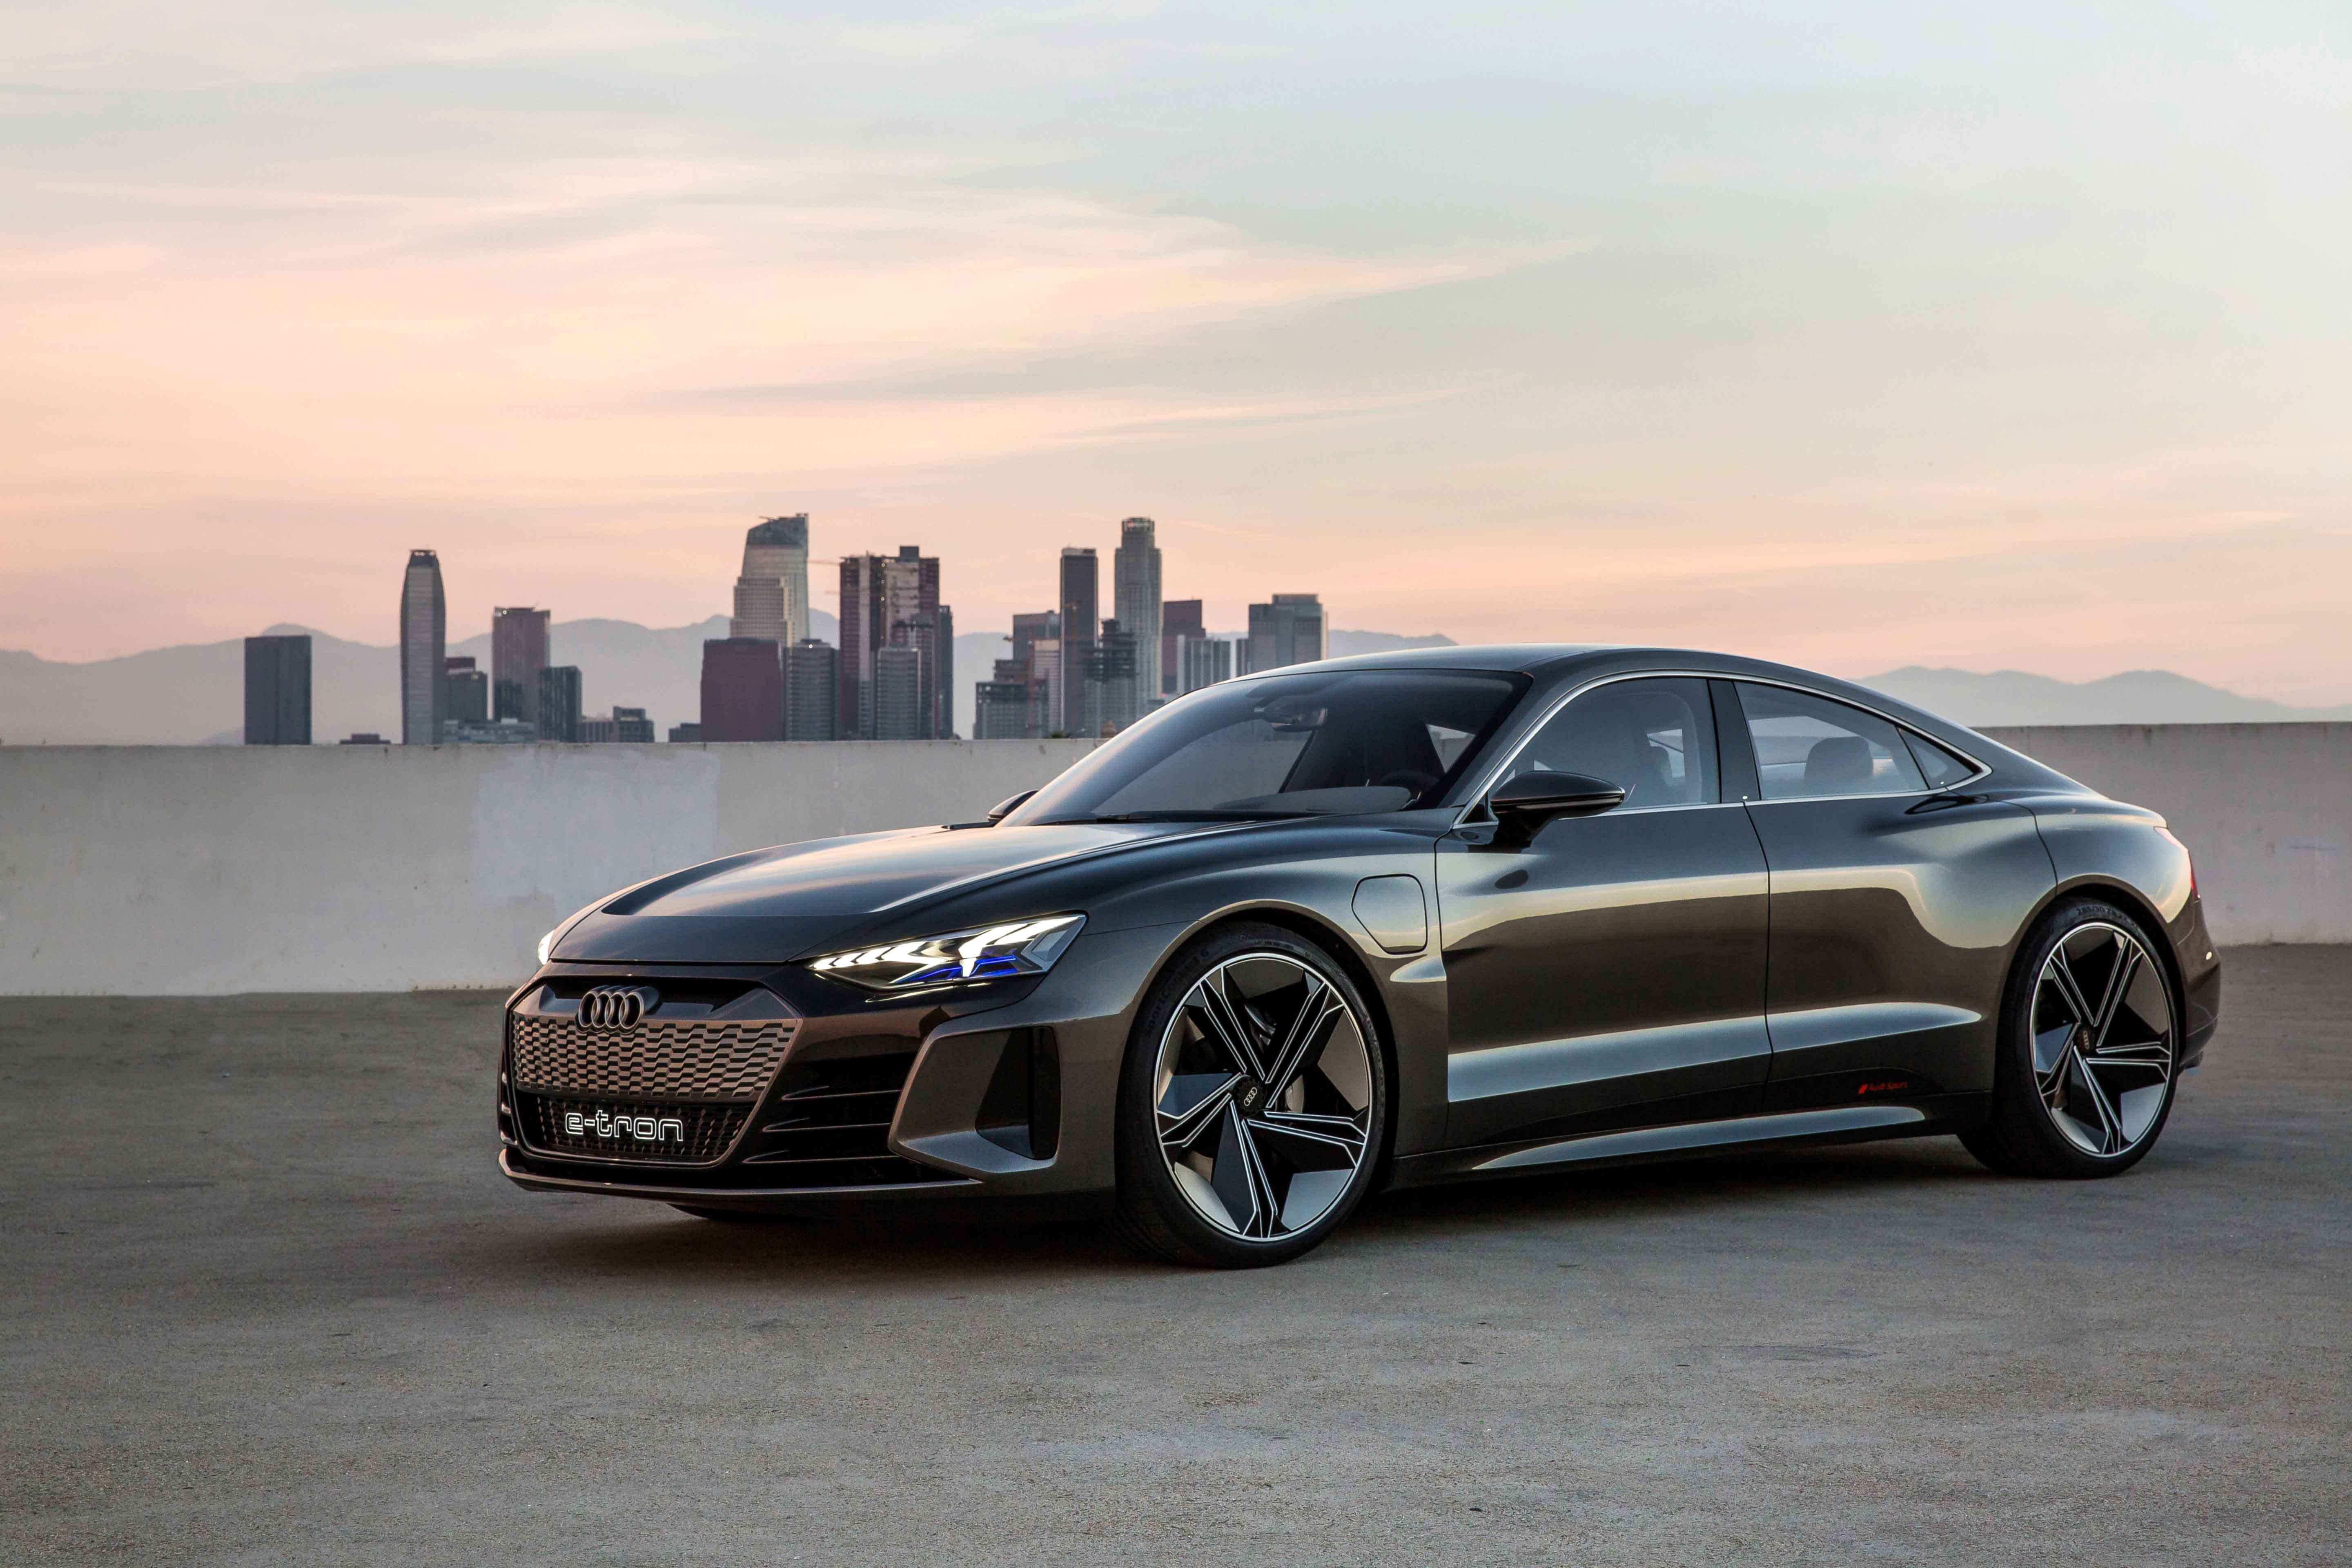 34 Great New Fastest Audi 2019 Concept Performance and New Engine for New Fastest Audi 2019 Concept